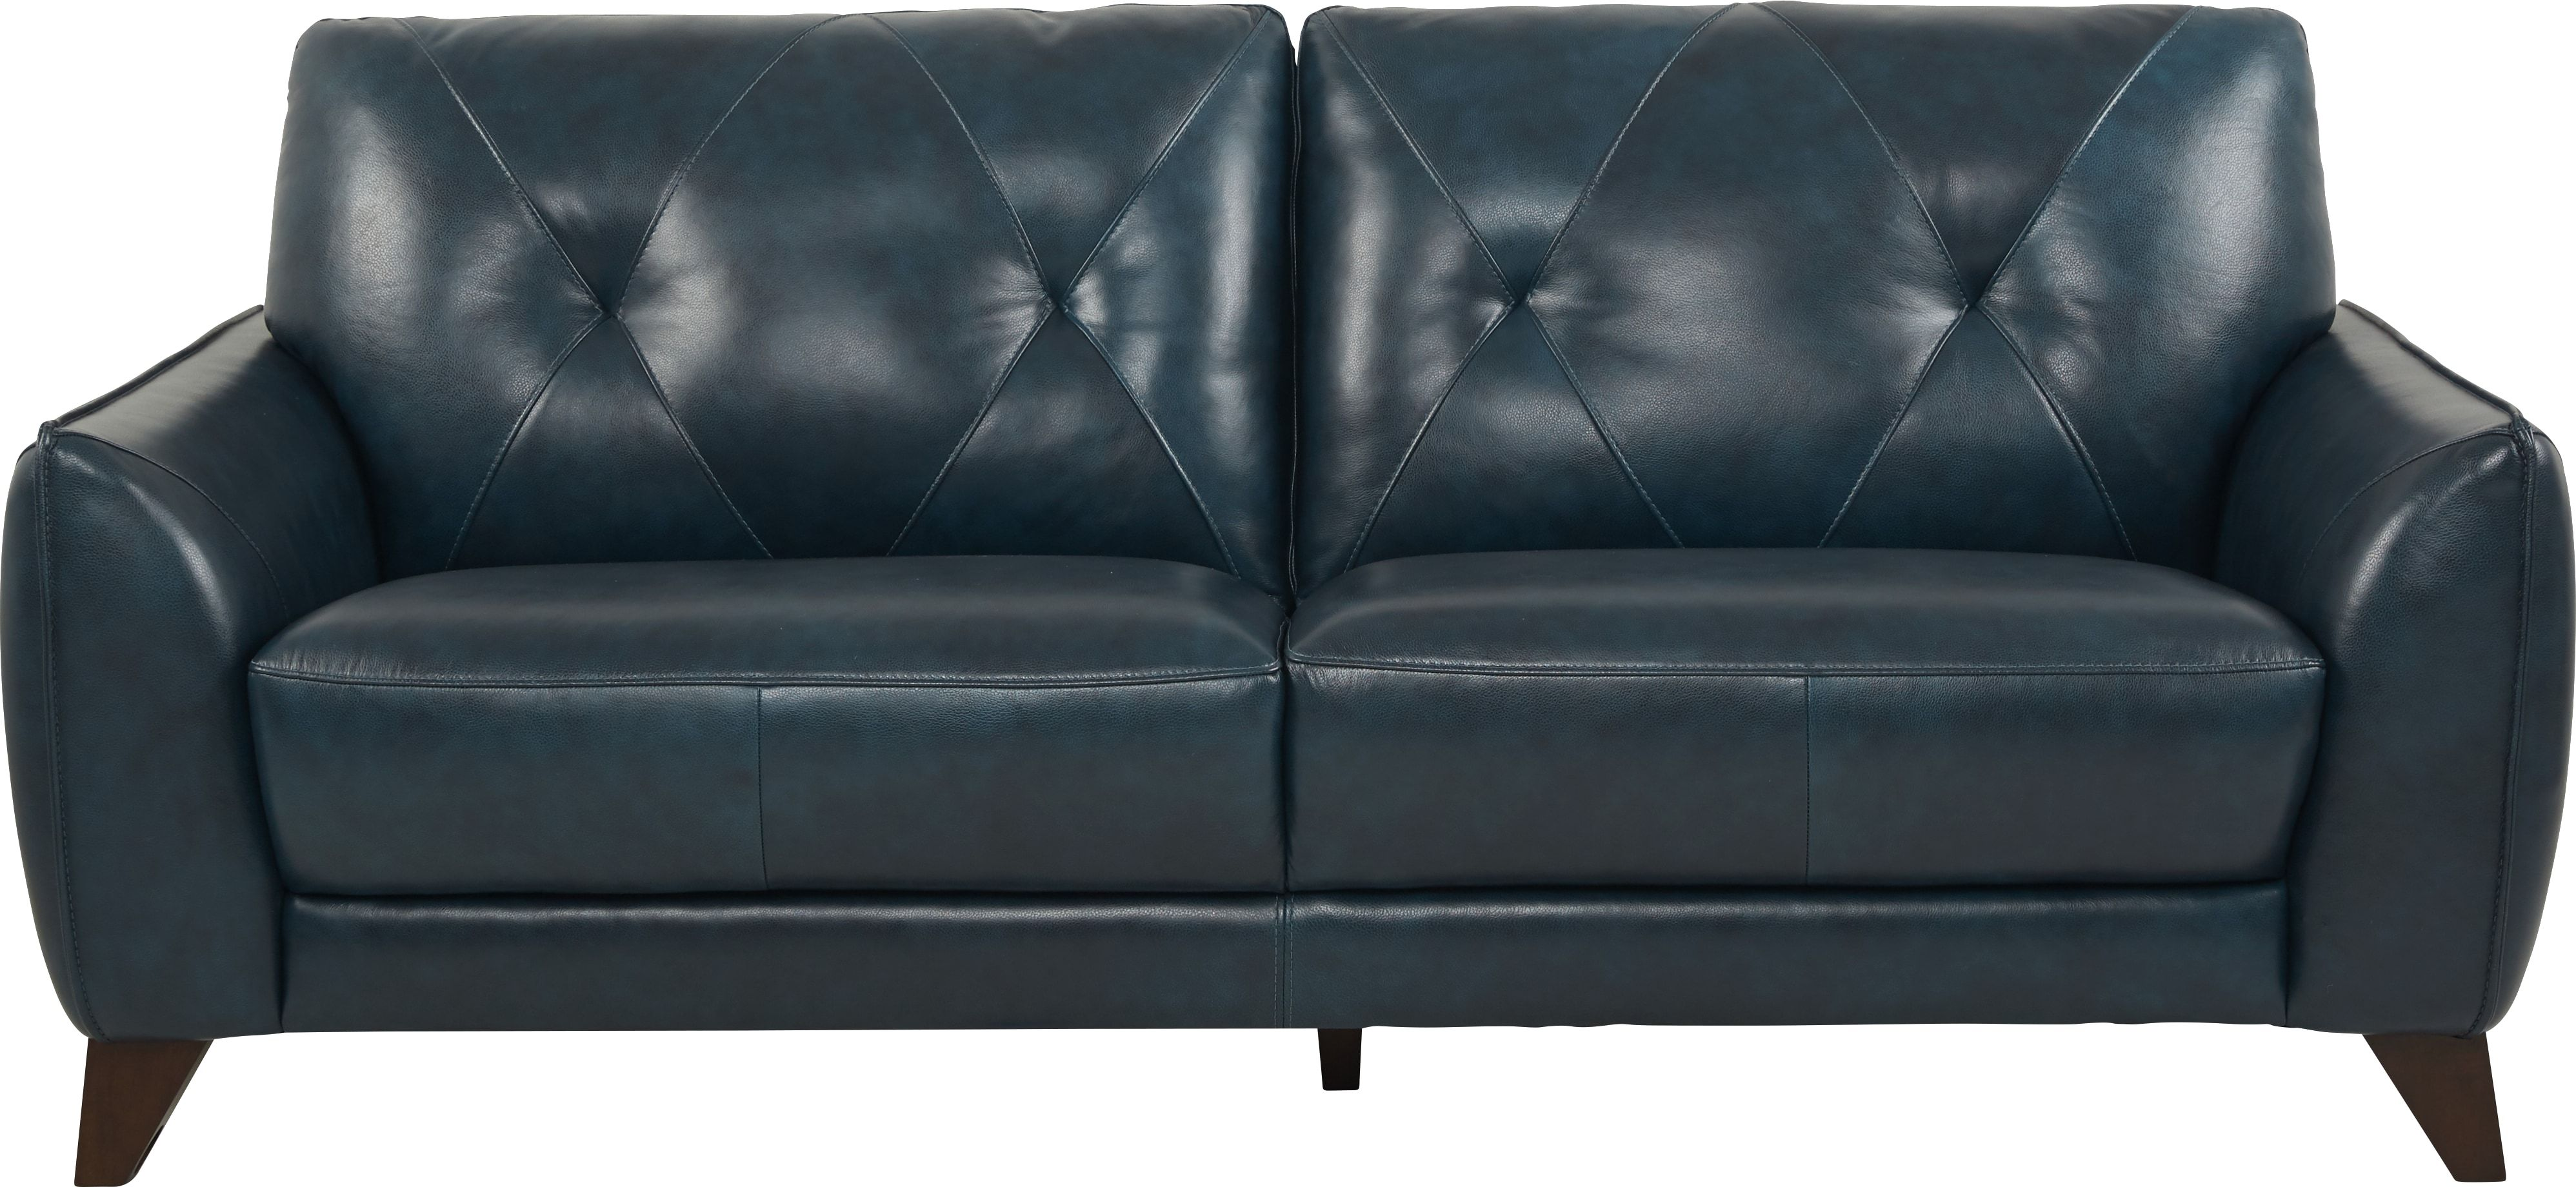 Salviano Blue Leather Sofa in 2019 | Home | Blue leather sofa ...